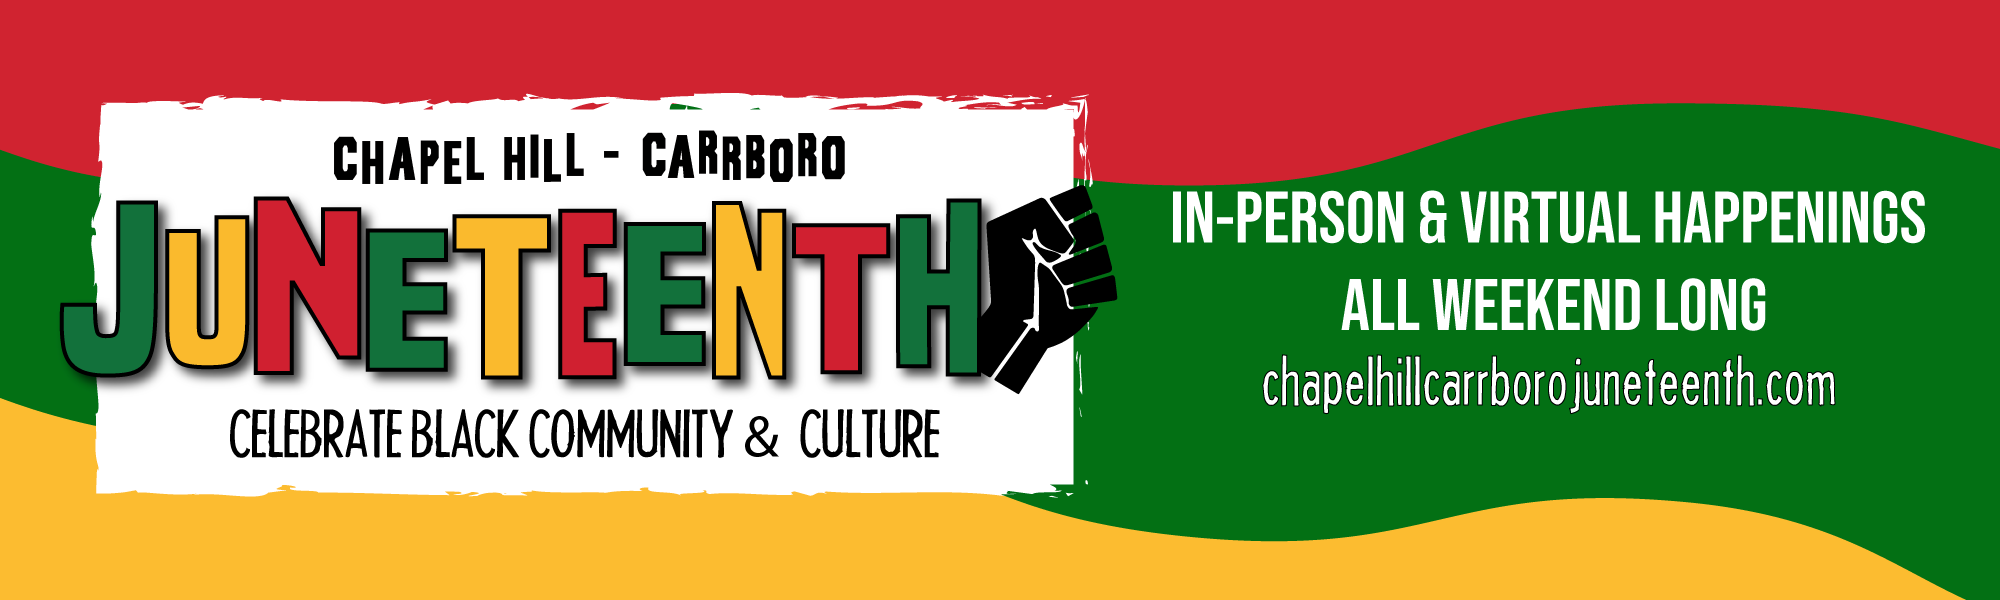 Chapel Hill - Carrboro Juneteenth. In-person and virtual happenings all weekend long.